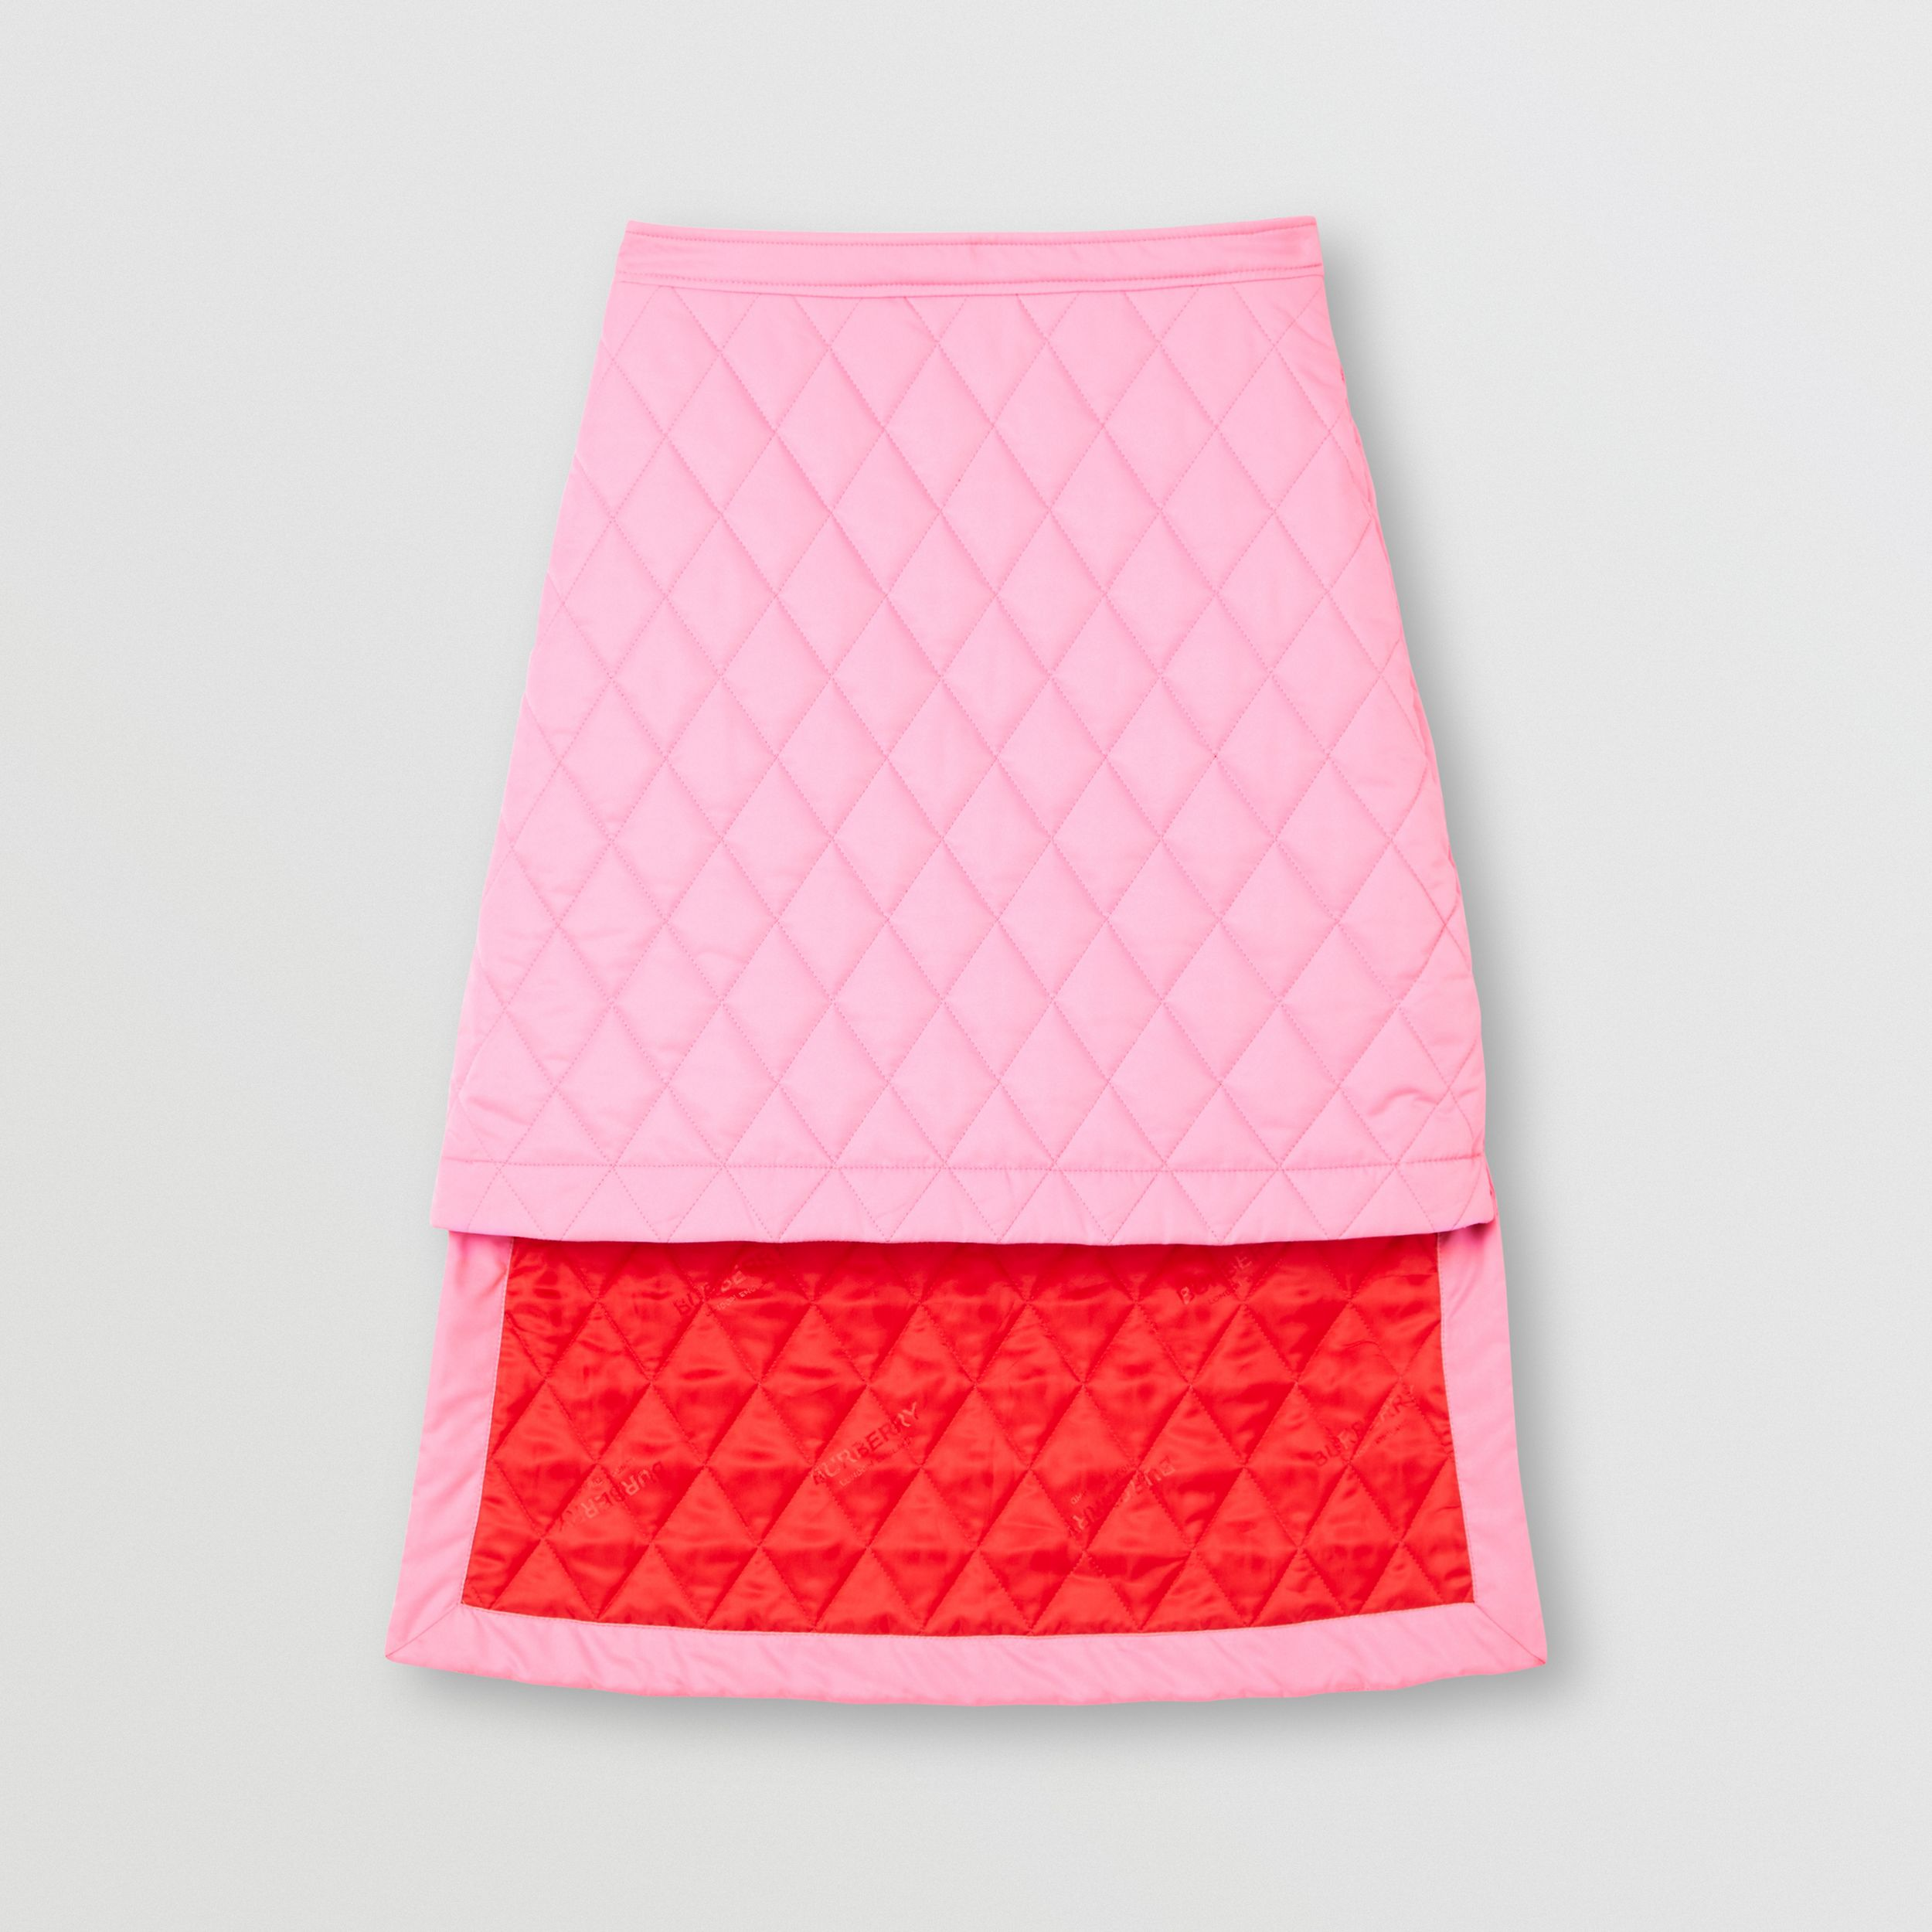 Asymmetric Diamond Quilted Skirt in Bubblegum Pink - Women | Burberry - 4